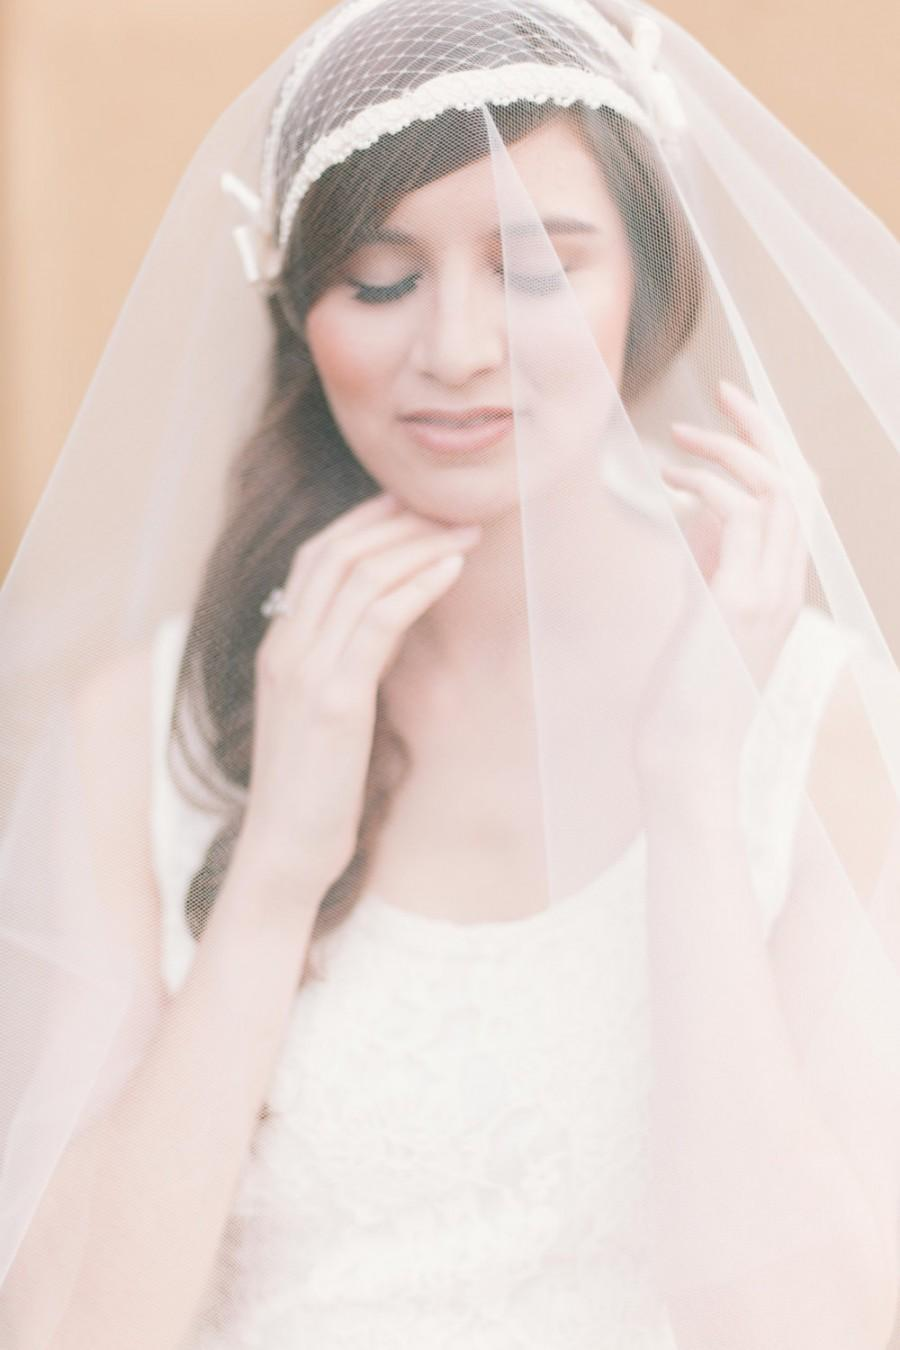 Düğün - Cap veil with drop veil art deco bridal cap veil circular drop veil ivory juliette cap veil round drop veil raw edge Ivory or white